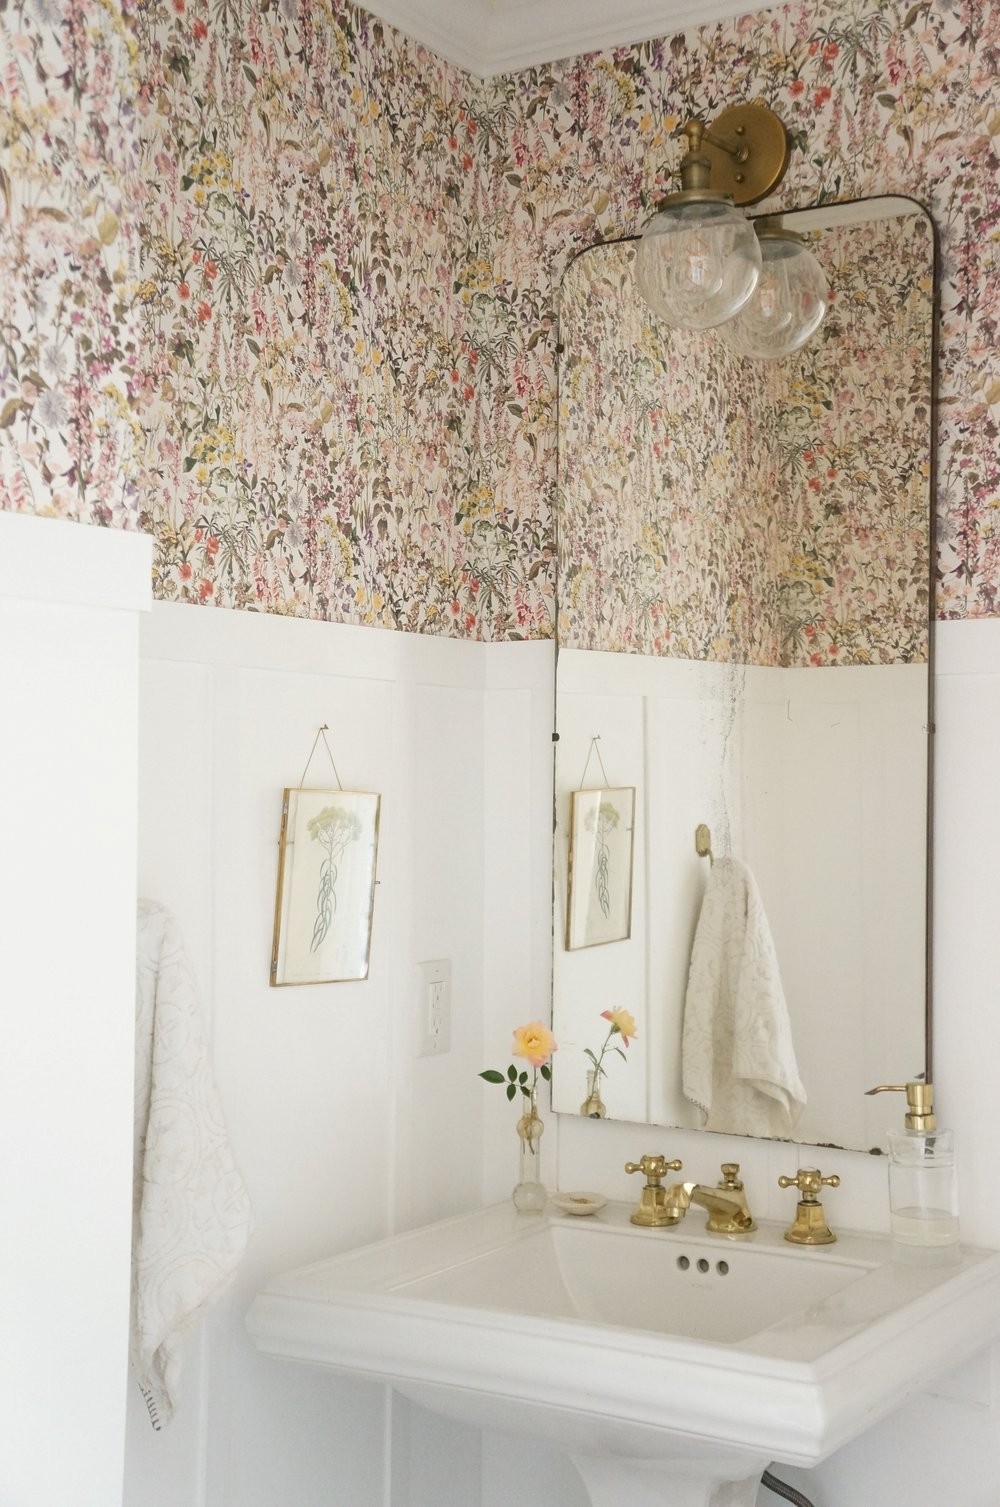 The Liberty of London Wallpaper in our powder room is so feminine and cheerful - it makes me think of Summer all year round.